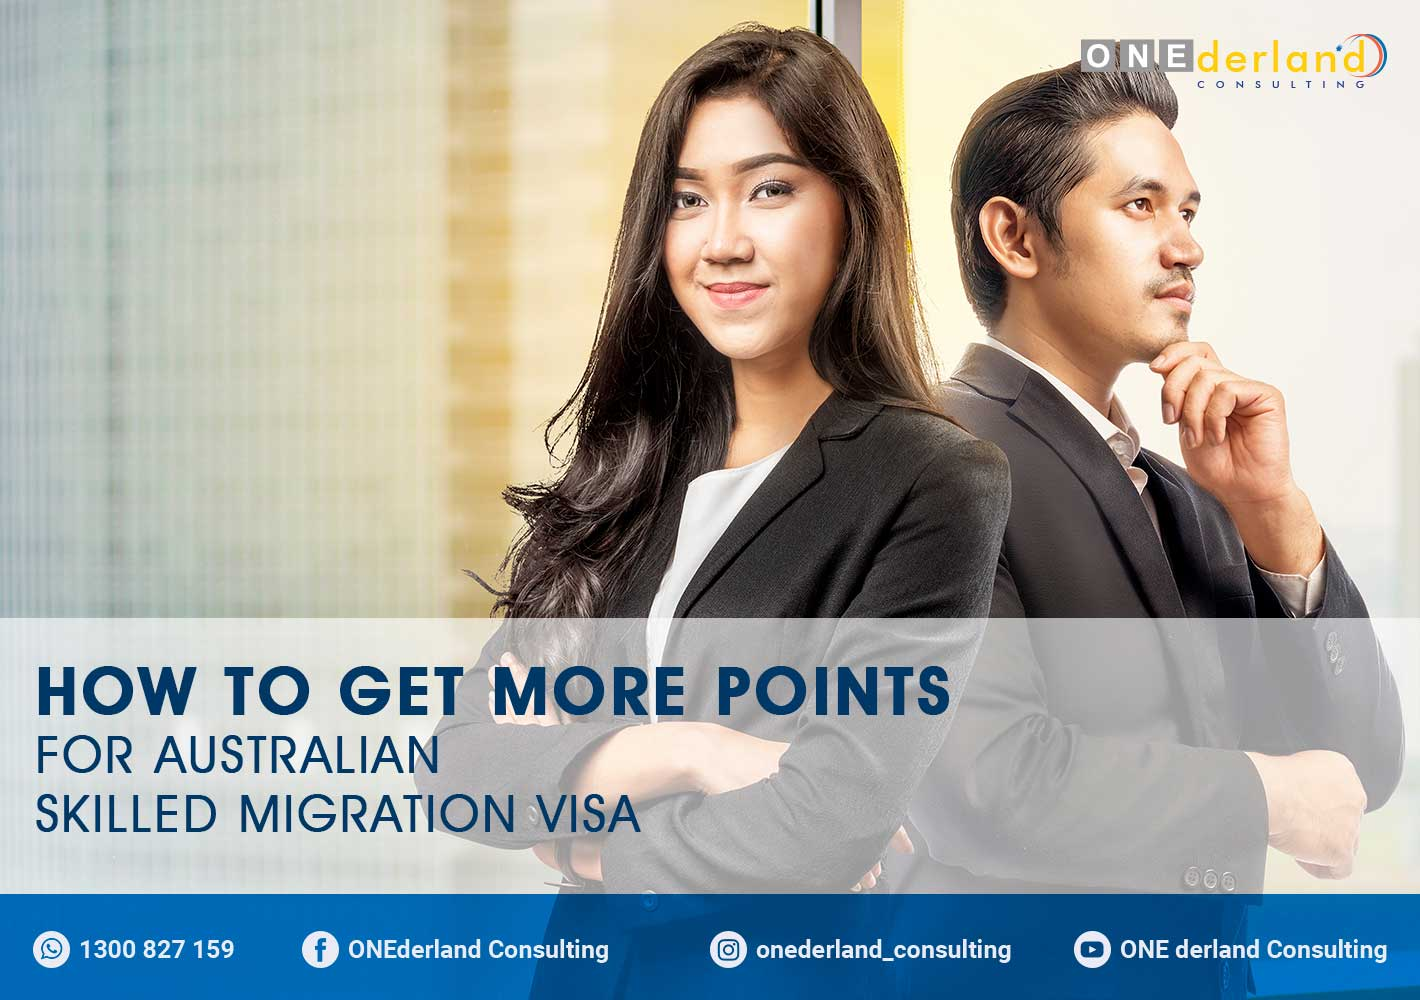 How to Get More Points for Australian Skilled Migration Visa